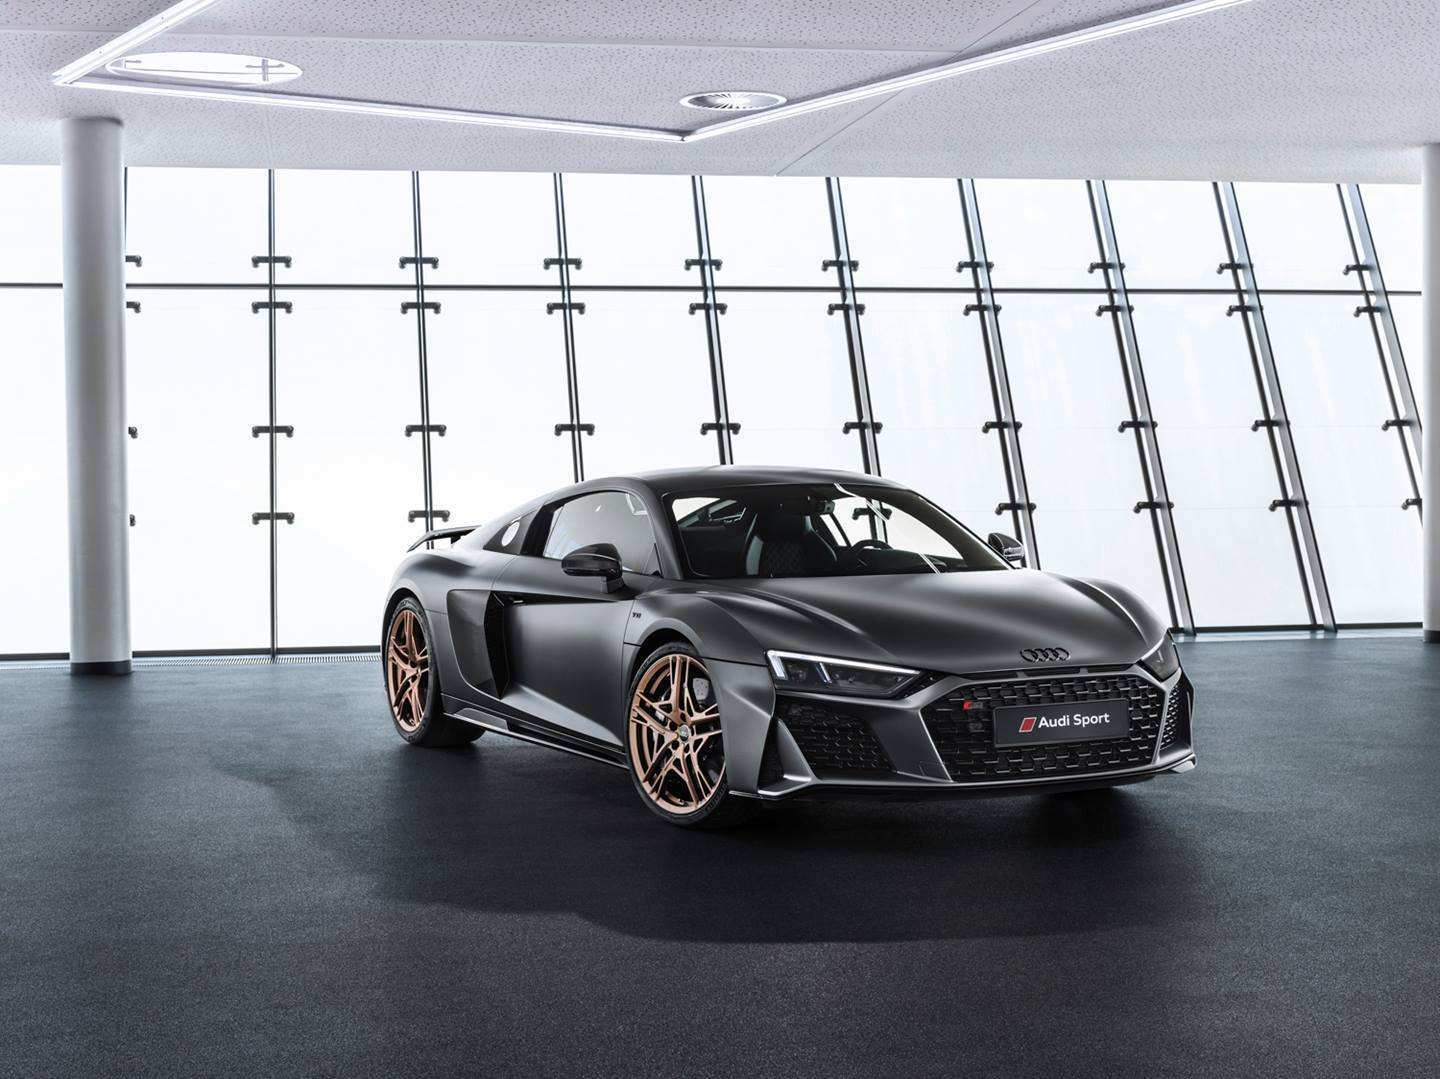 13 Great 2020 Audi R8 V10 Performance Release Date with 2020 Audi R8 V10 Performance